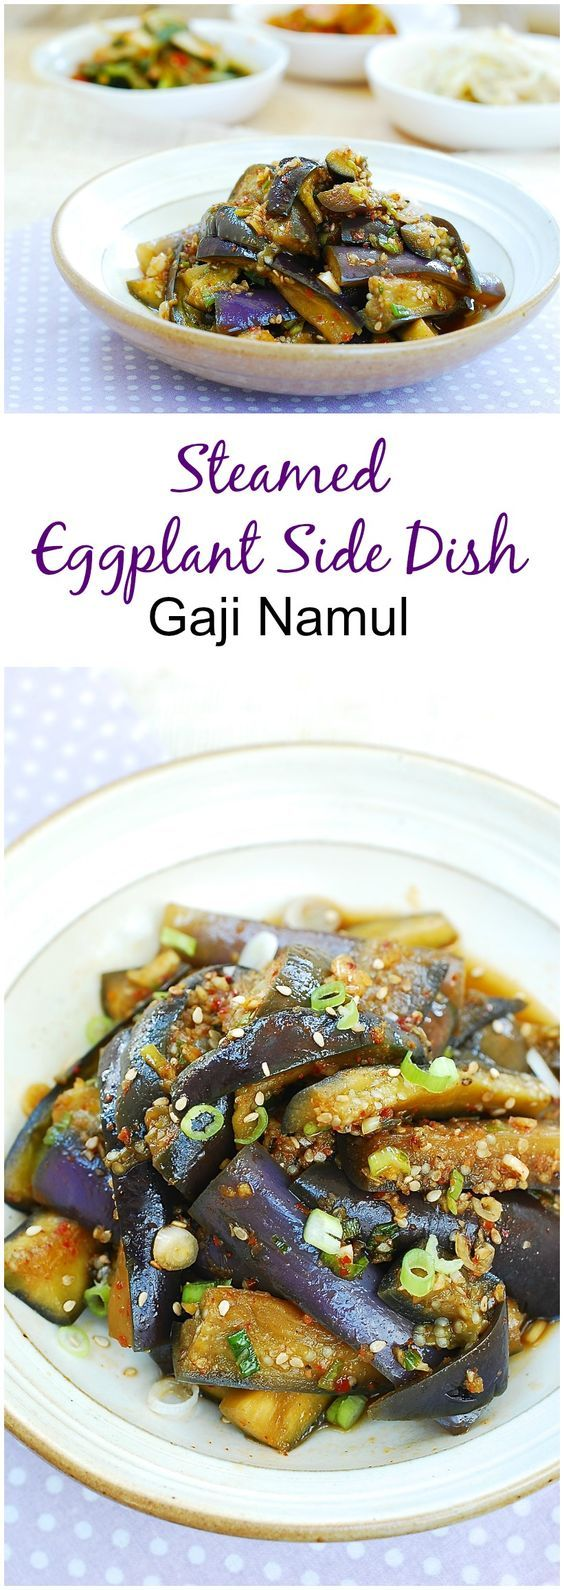 Delicious Korean eggplant side dish! 2 medium size Korean/Asian eggplants   1 scallion, finely chopped  1 teaspoon minced garlic 1-1/2 tablespoons soy sauce 2 teaspoons sesame oil ¼ teaspoon sugar ½ teaspoon gochugaru (Korean red chili pepper flakes) 1 teaspoon roasted sesame seeds pinch pepper   Cut the eggplants lengthwise in quarters. Then cut crosswise into about 2-inch pieces.   Boil the water in a pot with a steamer tier or basket over high heat, covered. Place the eggplant pieces in…